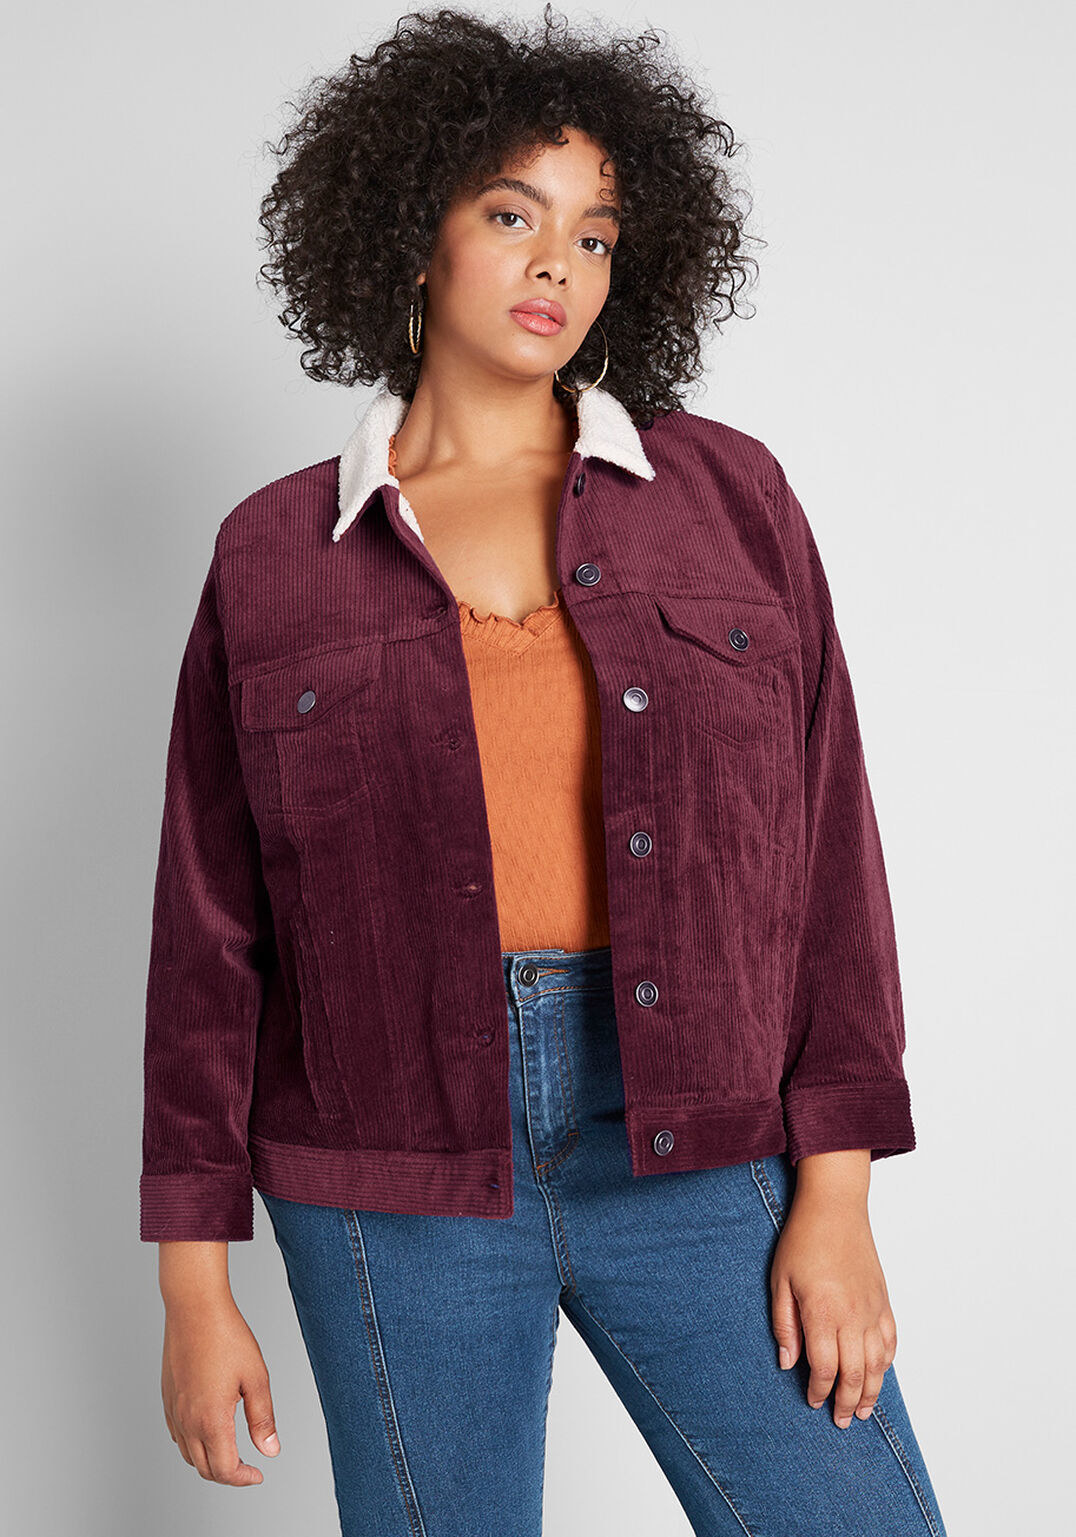 a model wearing the burgundy jacket with a white sherpa collar